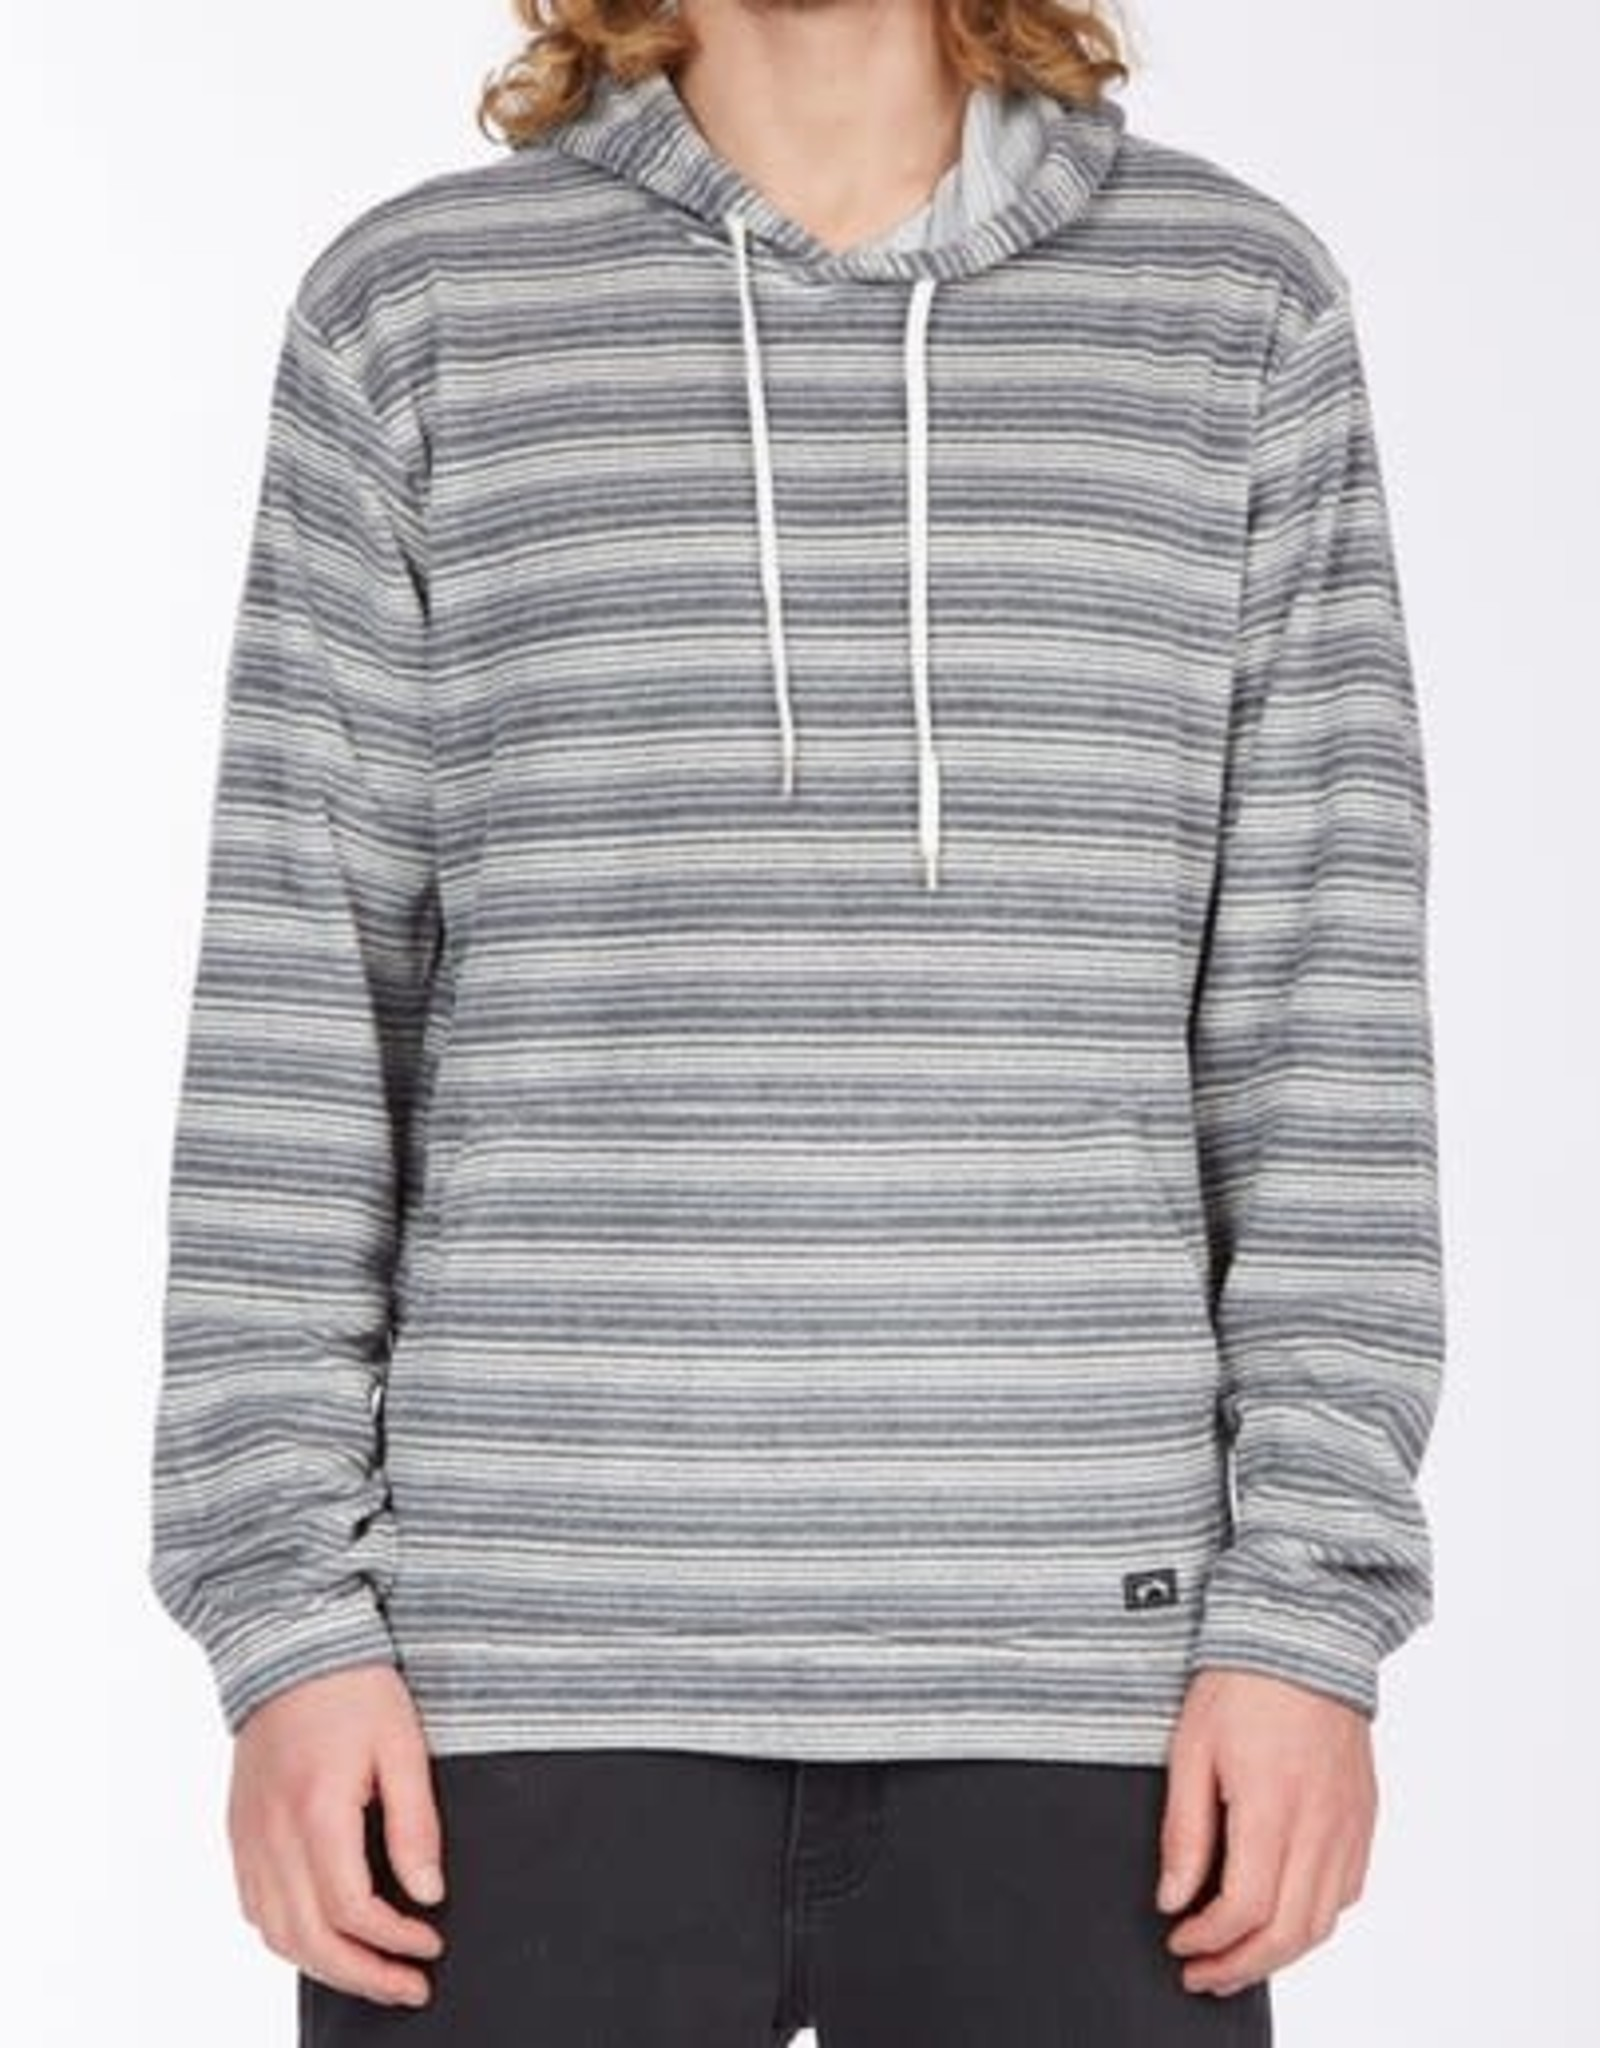 billabong Billabong Flecker Estado P/O Hoodie ABYKT00114